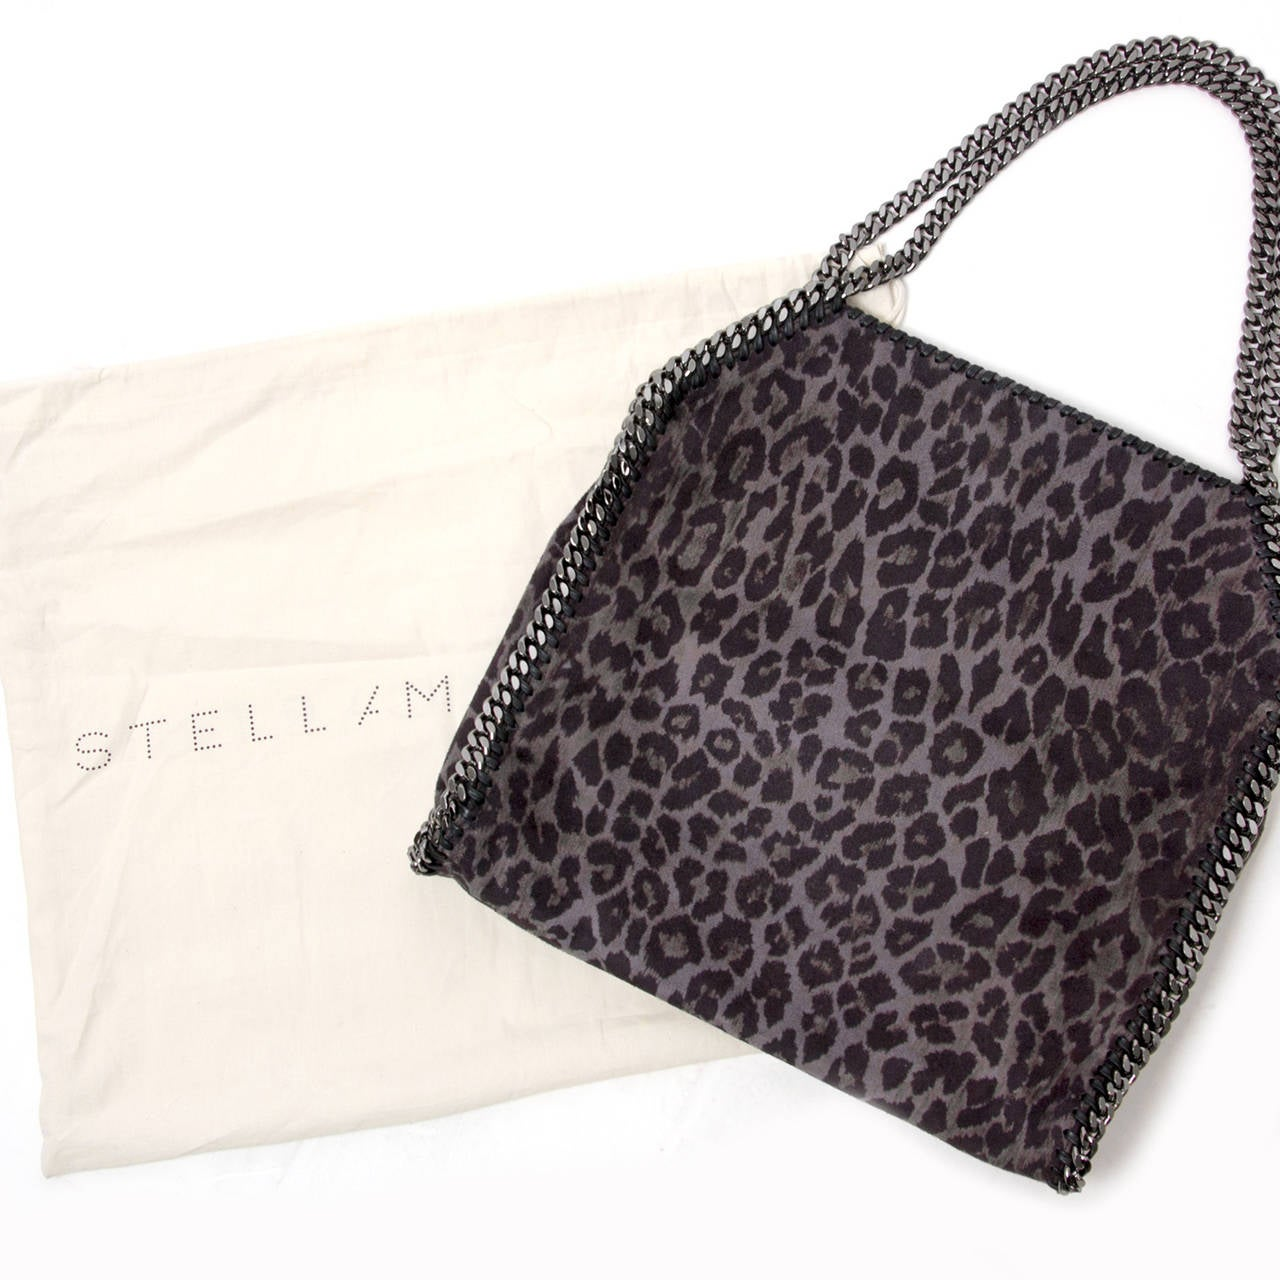 ebdb6b90c6daf Classic big Falabella tote in shaggy deer fabric with ruthenium chain  hardware and Stella McCartney logo